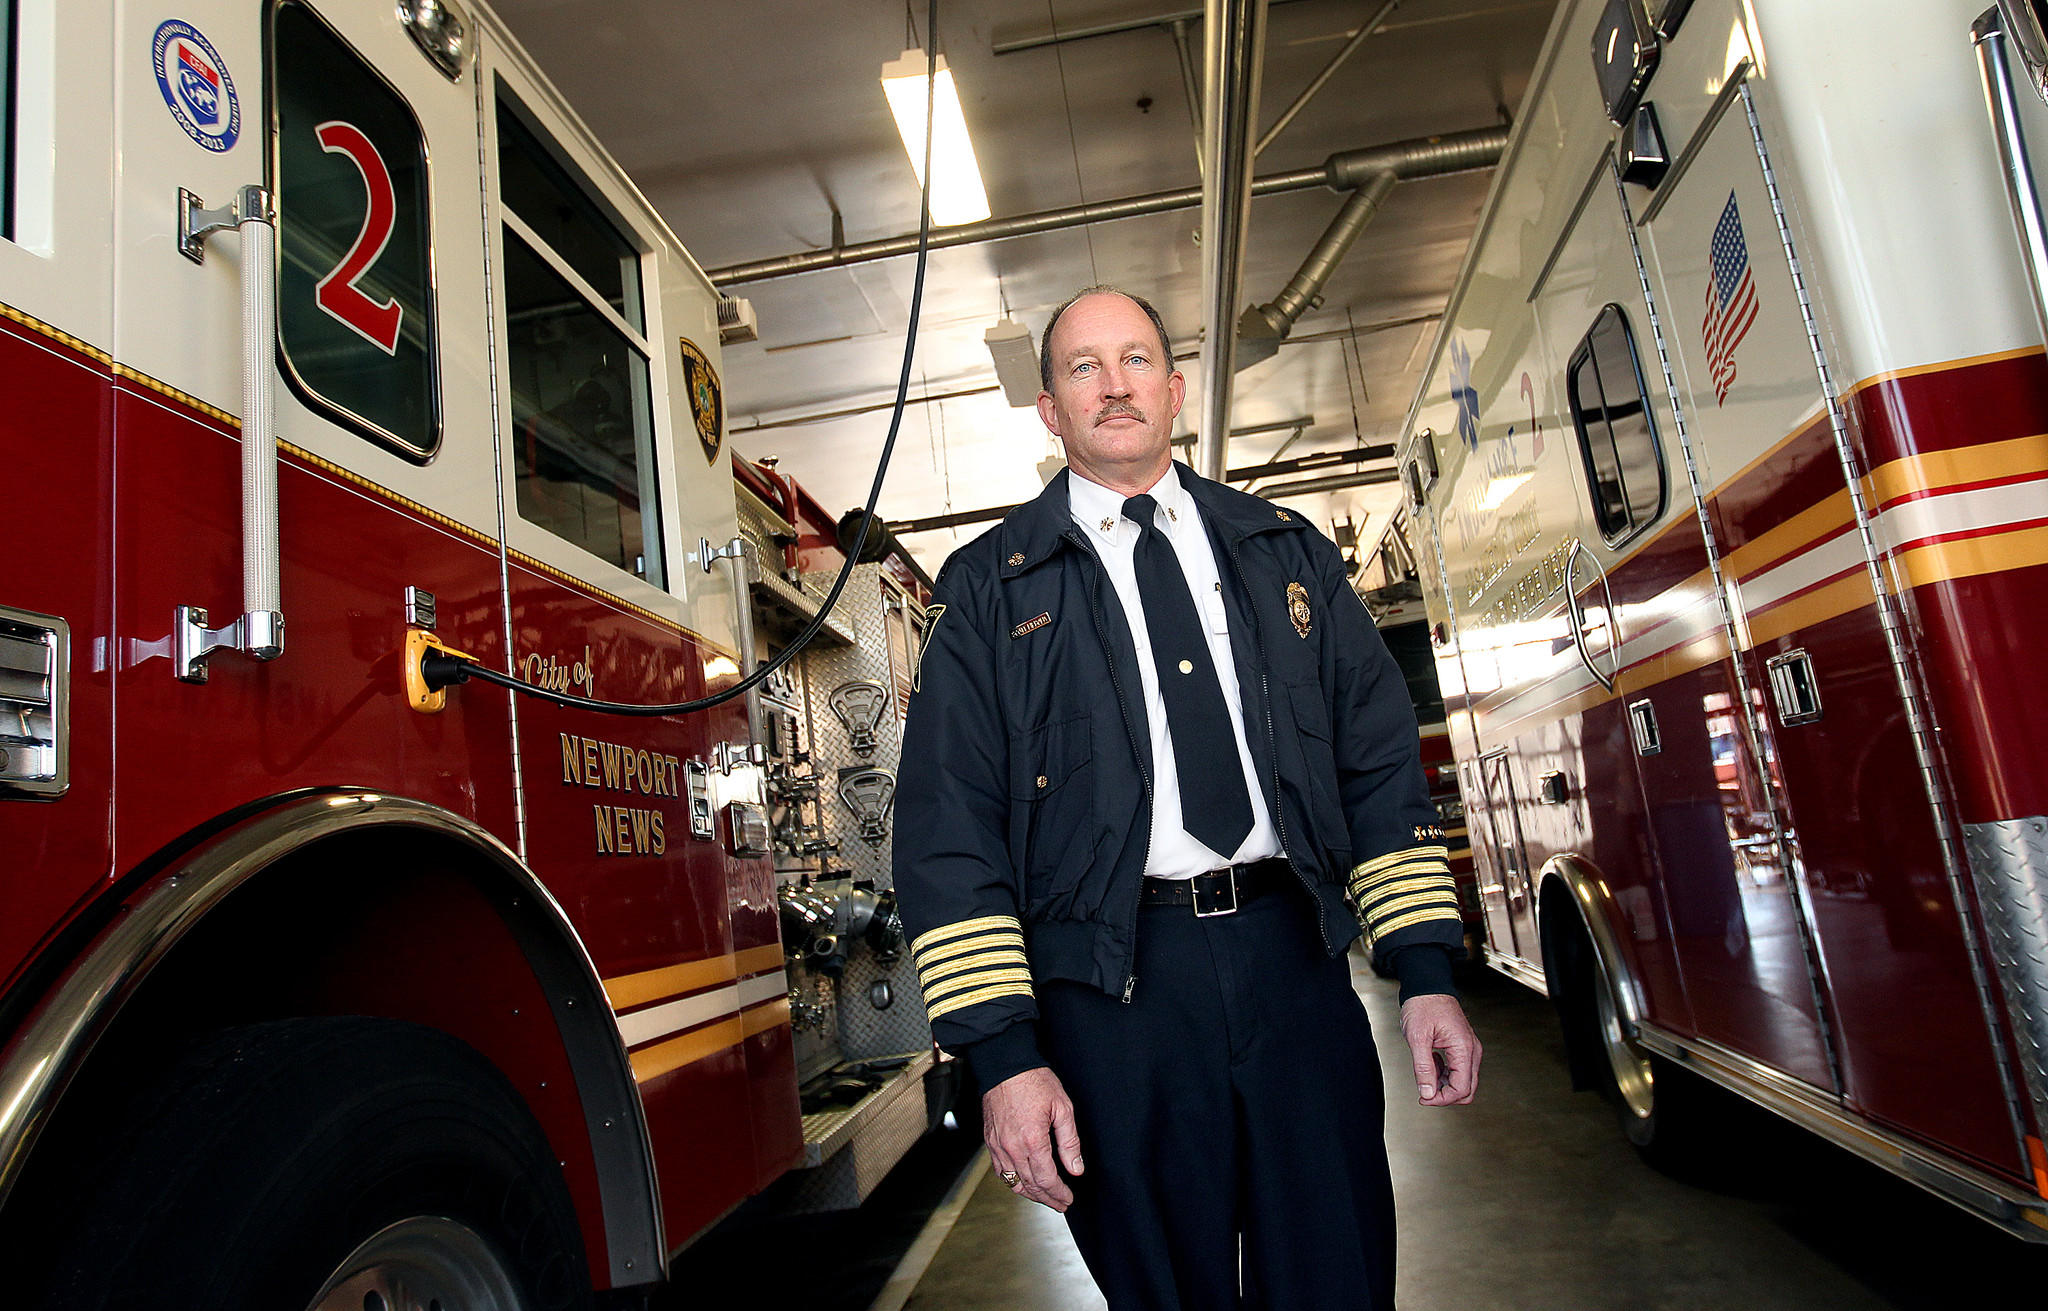 Newport News fire chief Scott Liebold is set to retire after 30 years with the department. Liebold is very fond of the time he spent in Station 2 on Wickham Ave.